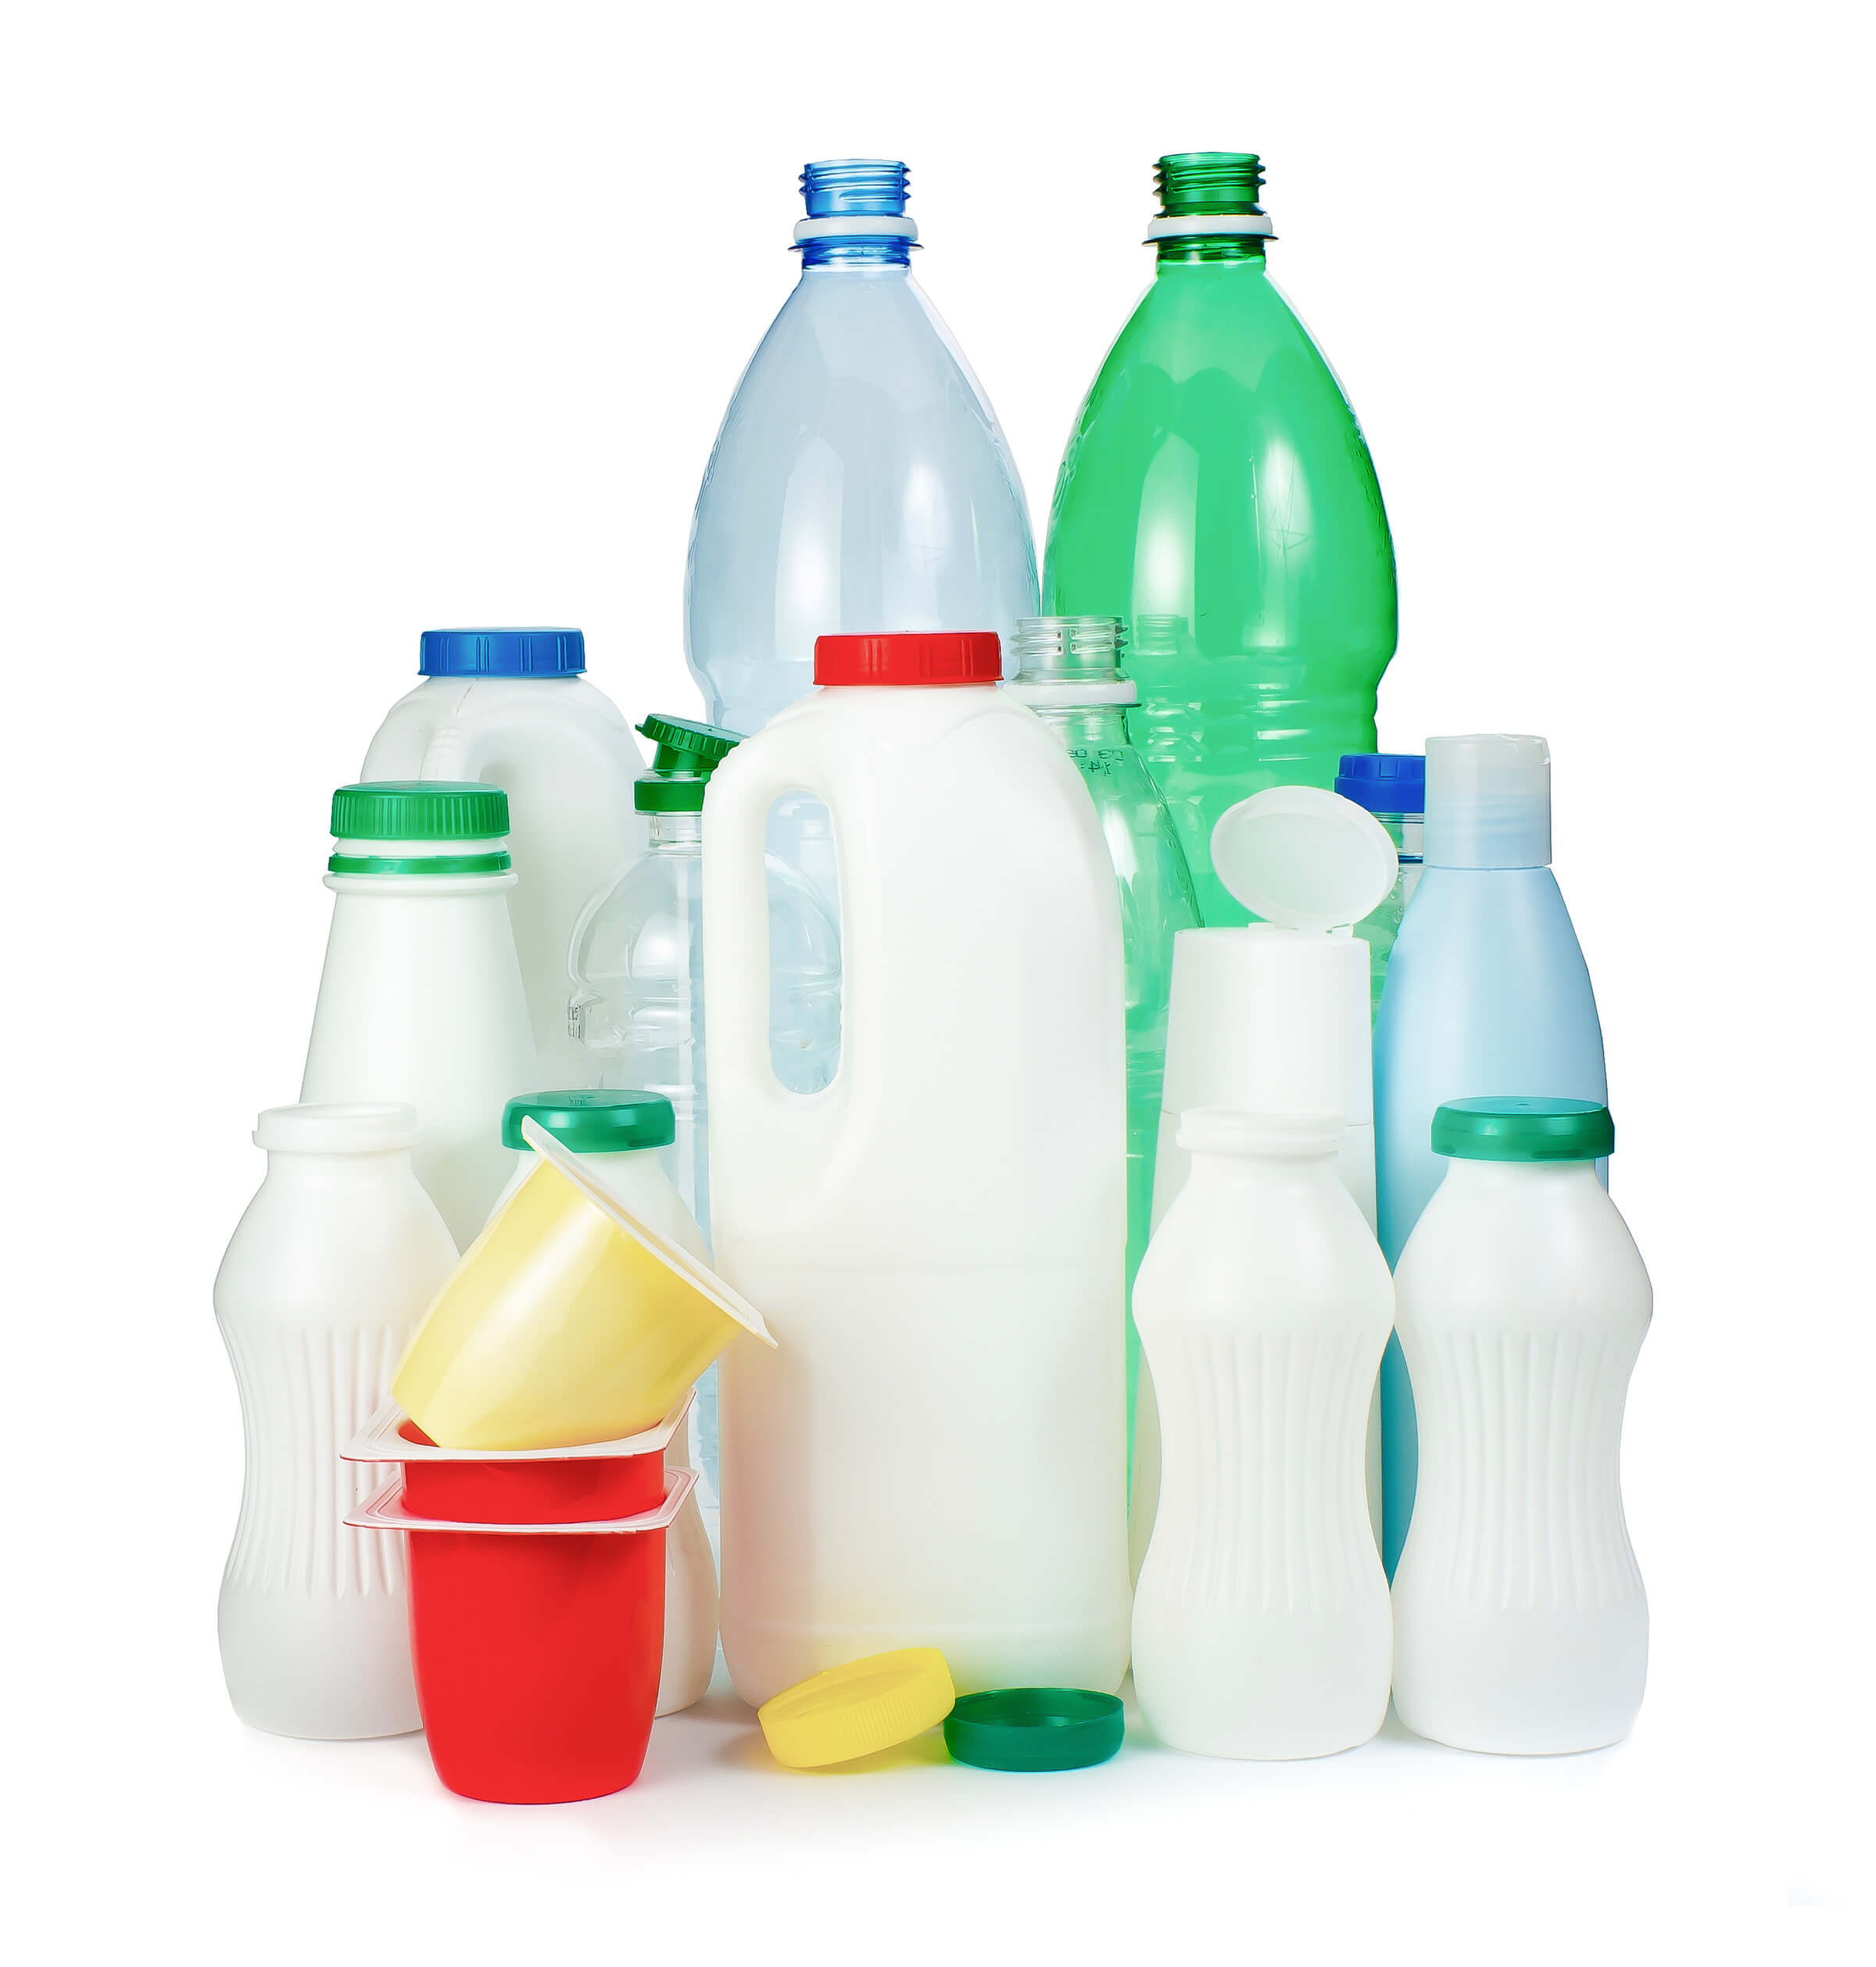 Different kinds of plastic containers and packaging